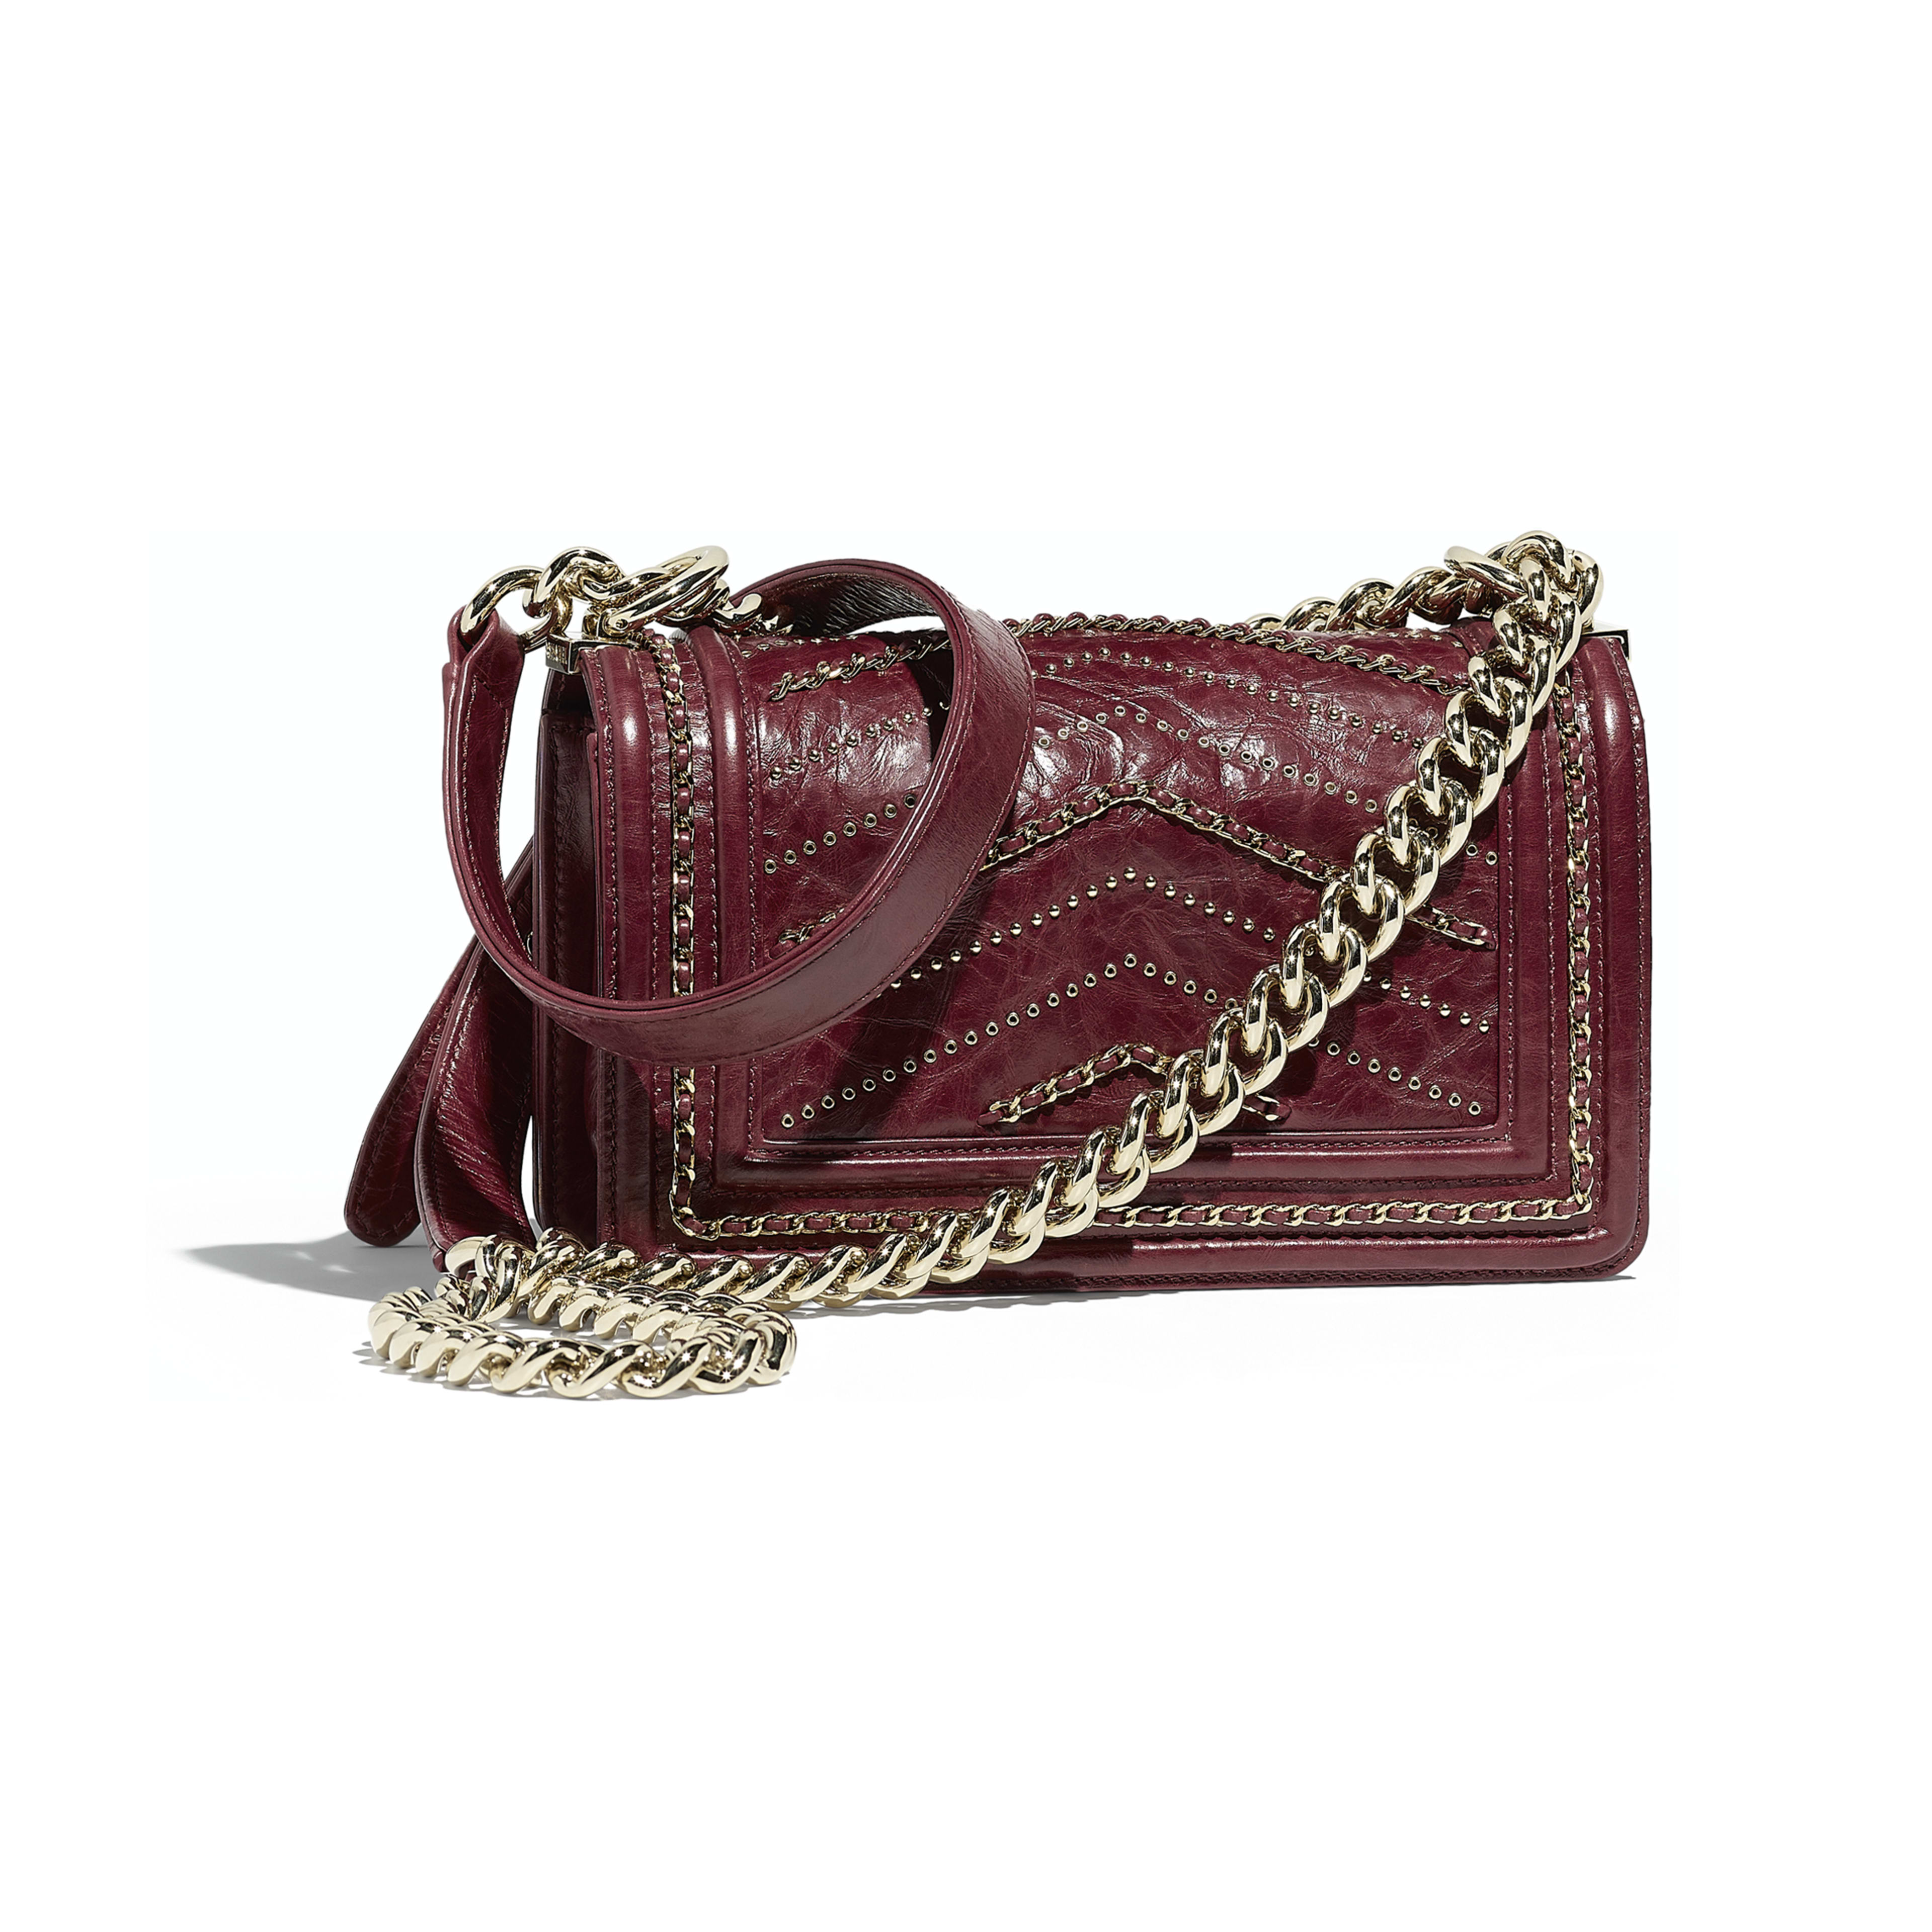 Small BOY CHANEL Handbag Crumpled Calfskin & Gold-Tone Metal Red -                                       view 2 - see full sized version